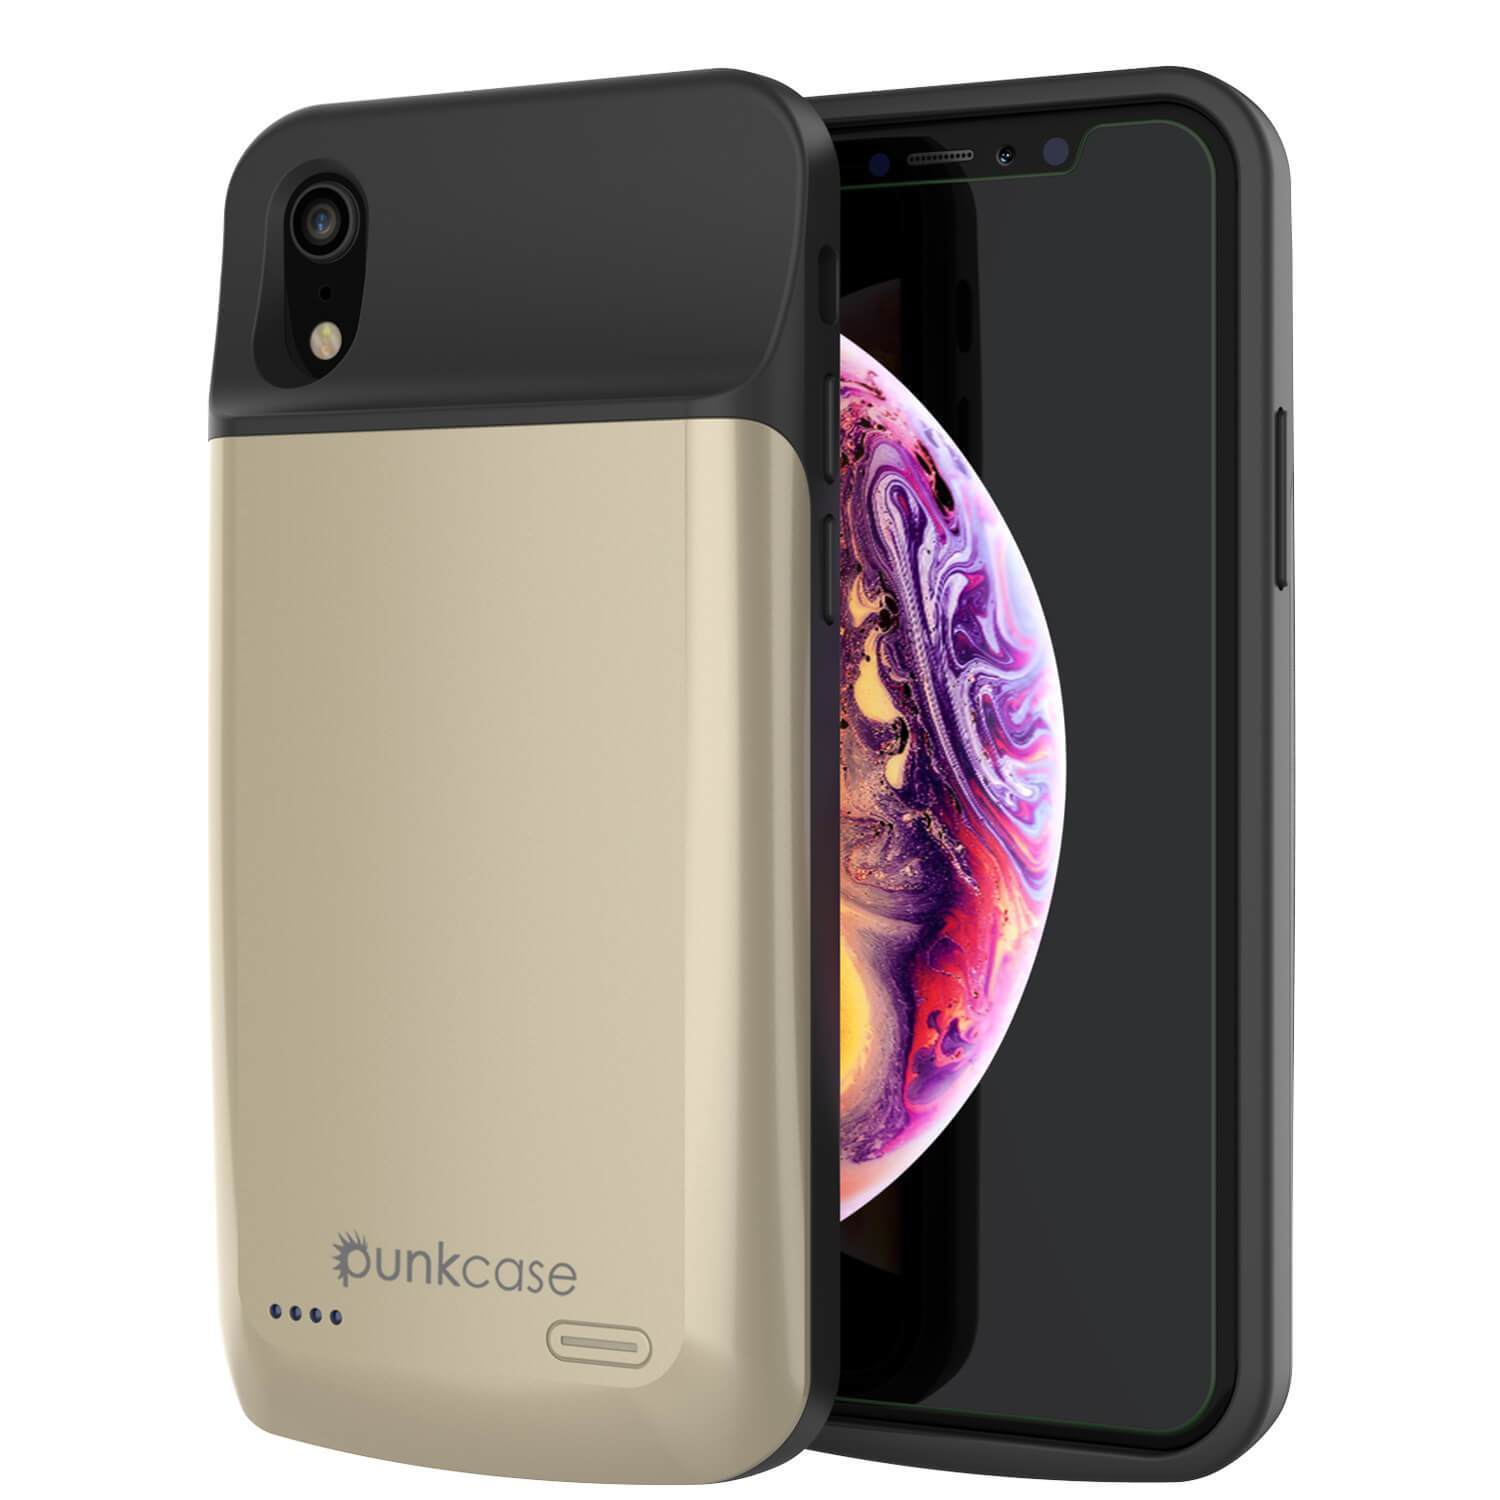 iPhone 11 Pro Battery Case, PunkJuice 5000mAH Fast Charging Power Bank W/ Screen Protector | [Gold]